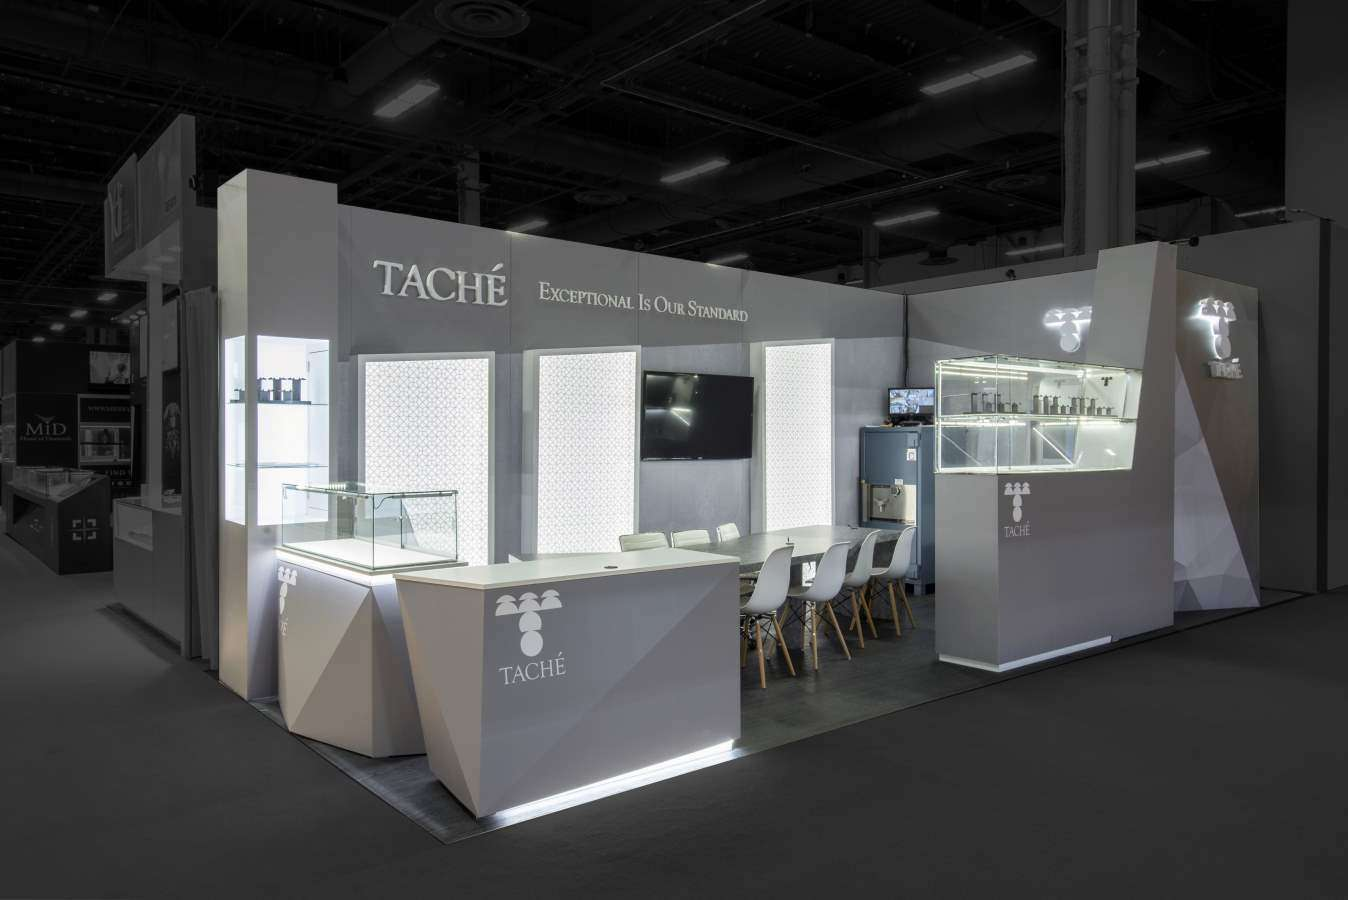 10x30 custom booth at JCK, Las Vegas